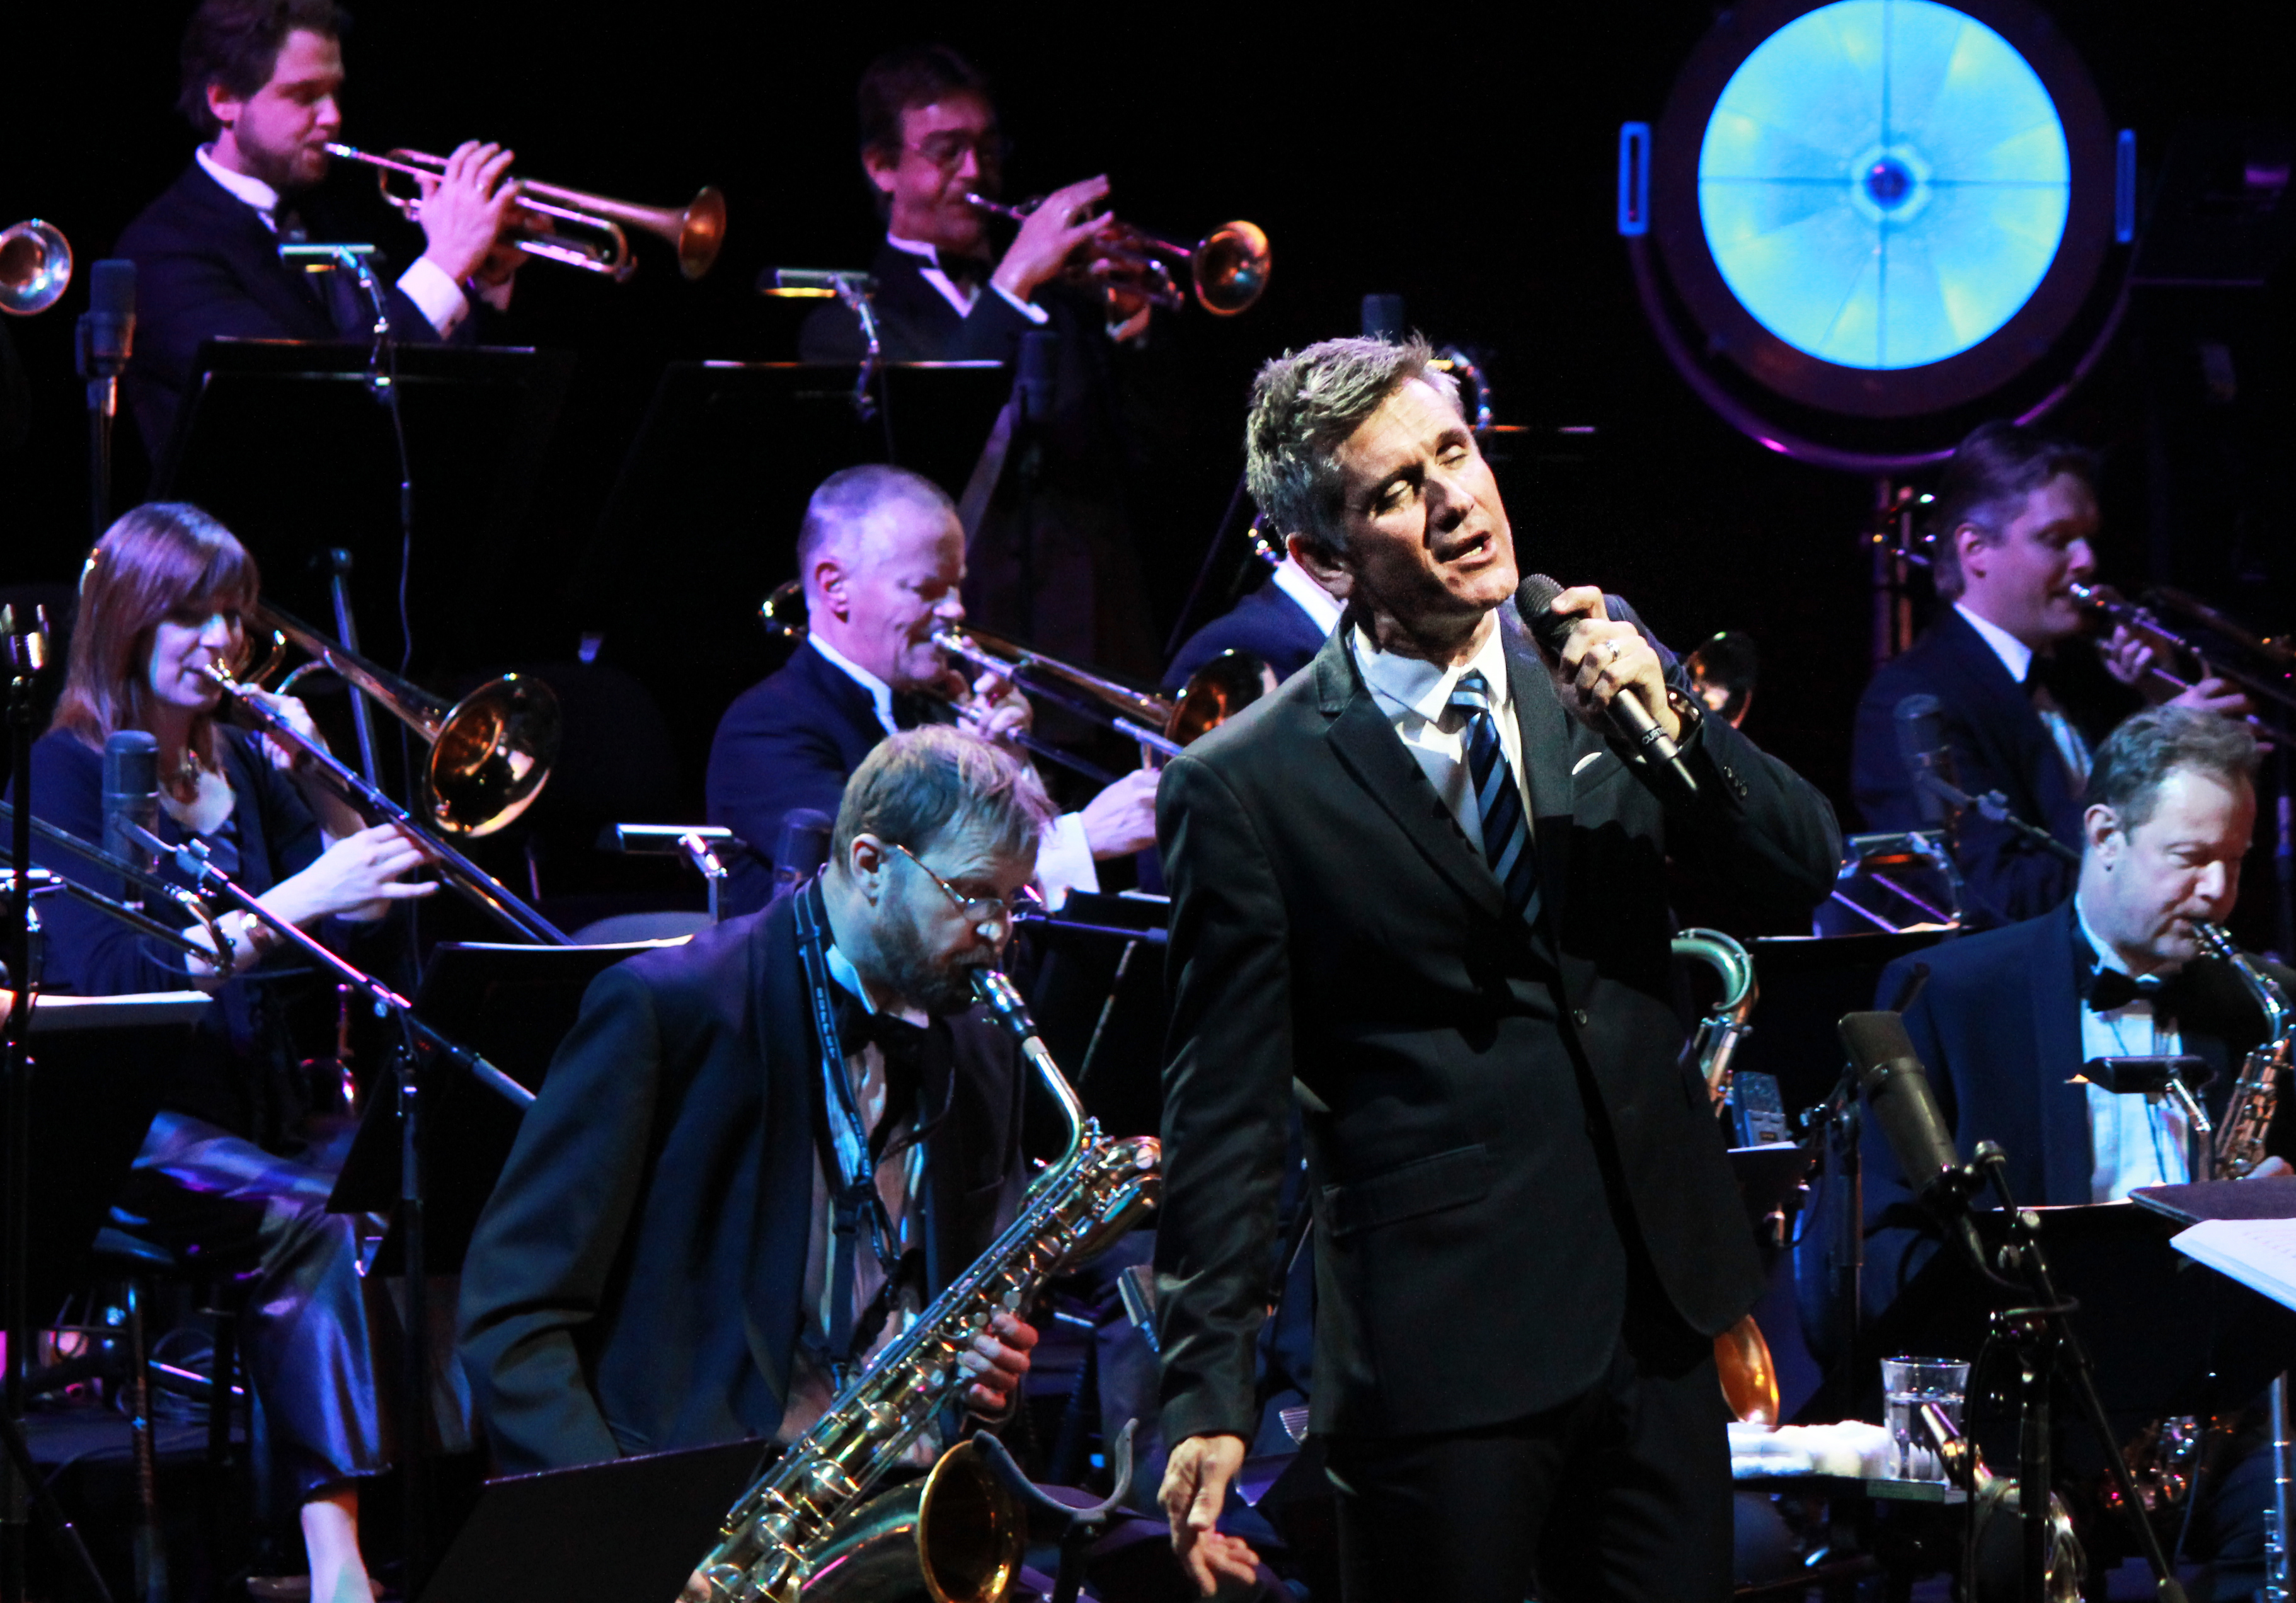 Fly me to the moon - Curtis Stigers with the Danish Radio Big Band